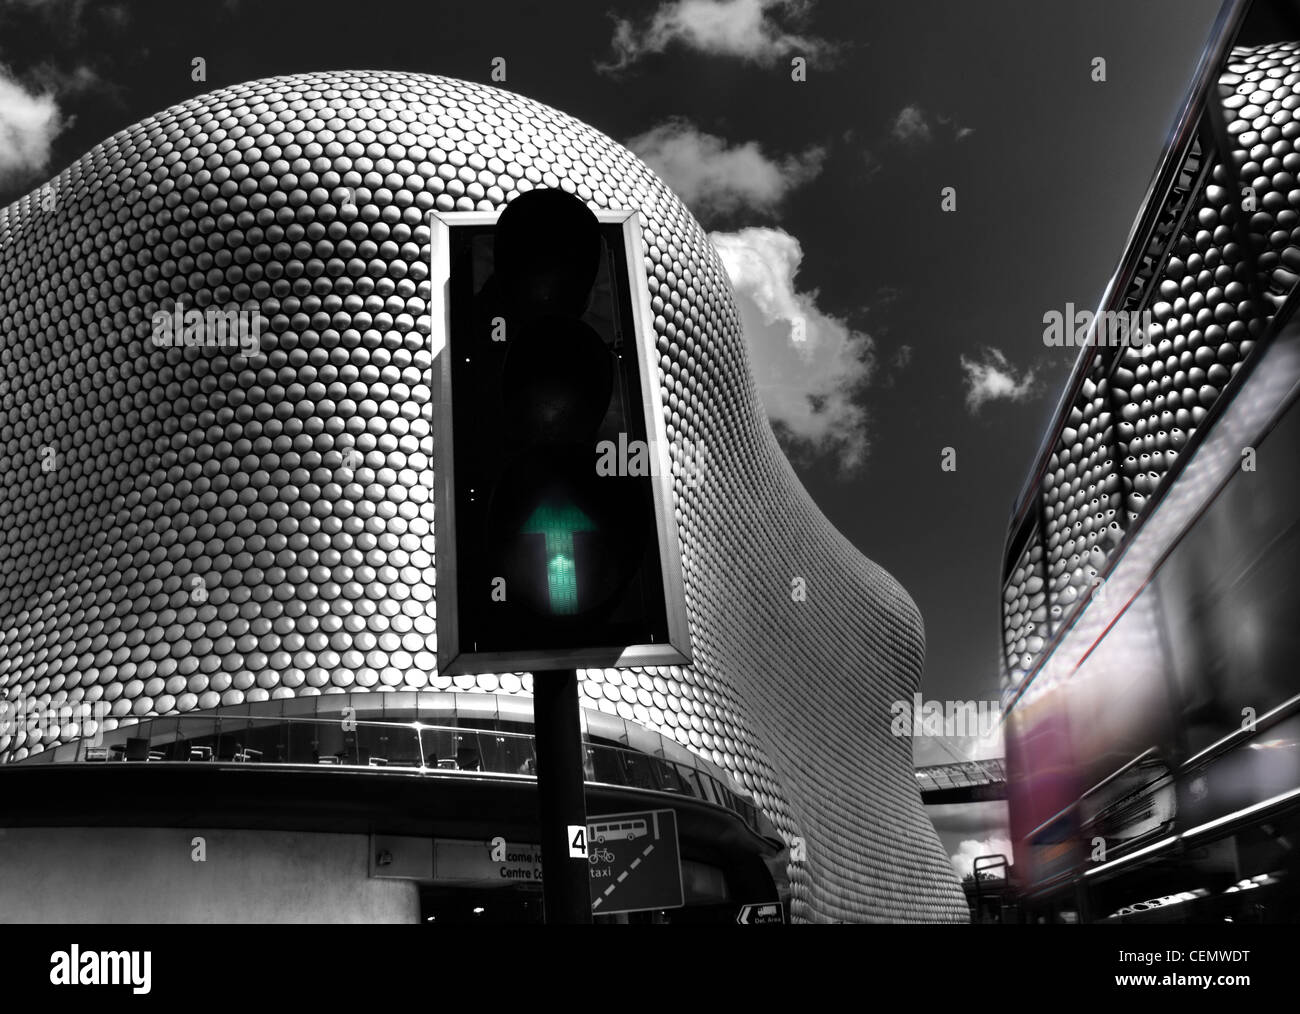 Birmingham,Selfridges,Bullring,with,a,no,50,Bus,passing.,Reflections,in,the,bus,England,englands,second,2nd,city,UK,GB,britain,great,gotonysmith,shopping,dept,store,department,center,centre,green,traffic,light,go,ahead,public,transport,gotonysmith,Buy Pictures of,Buy Images Of